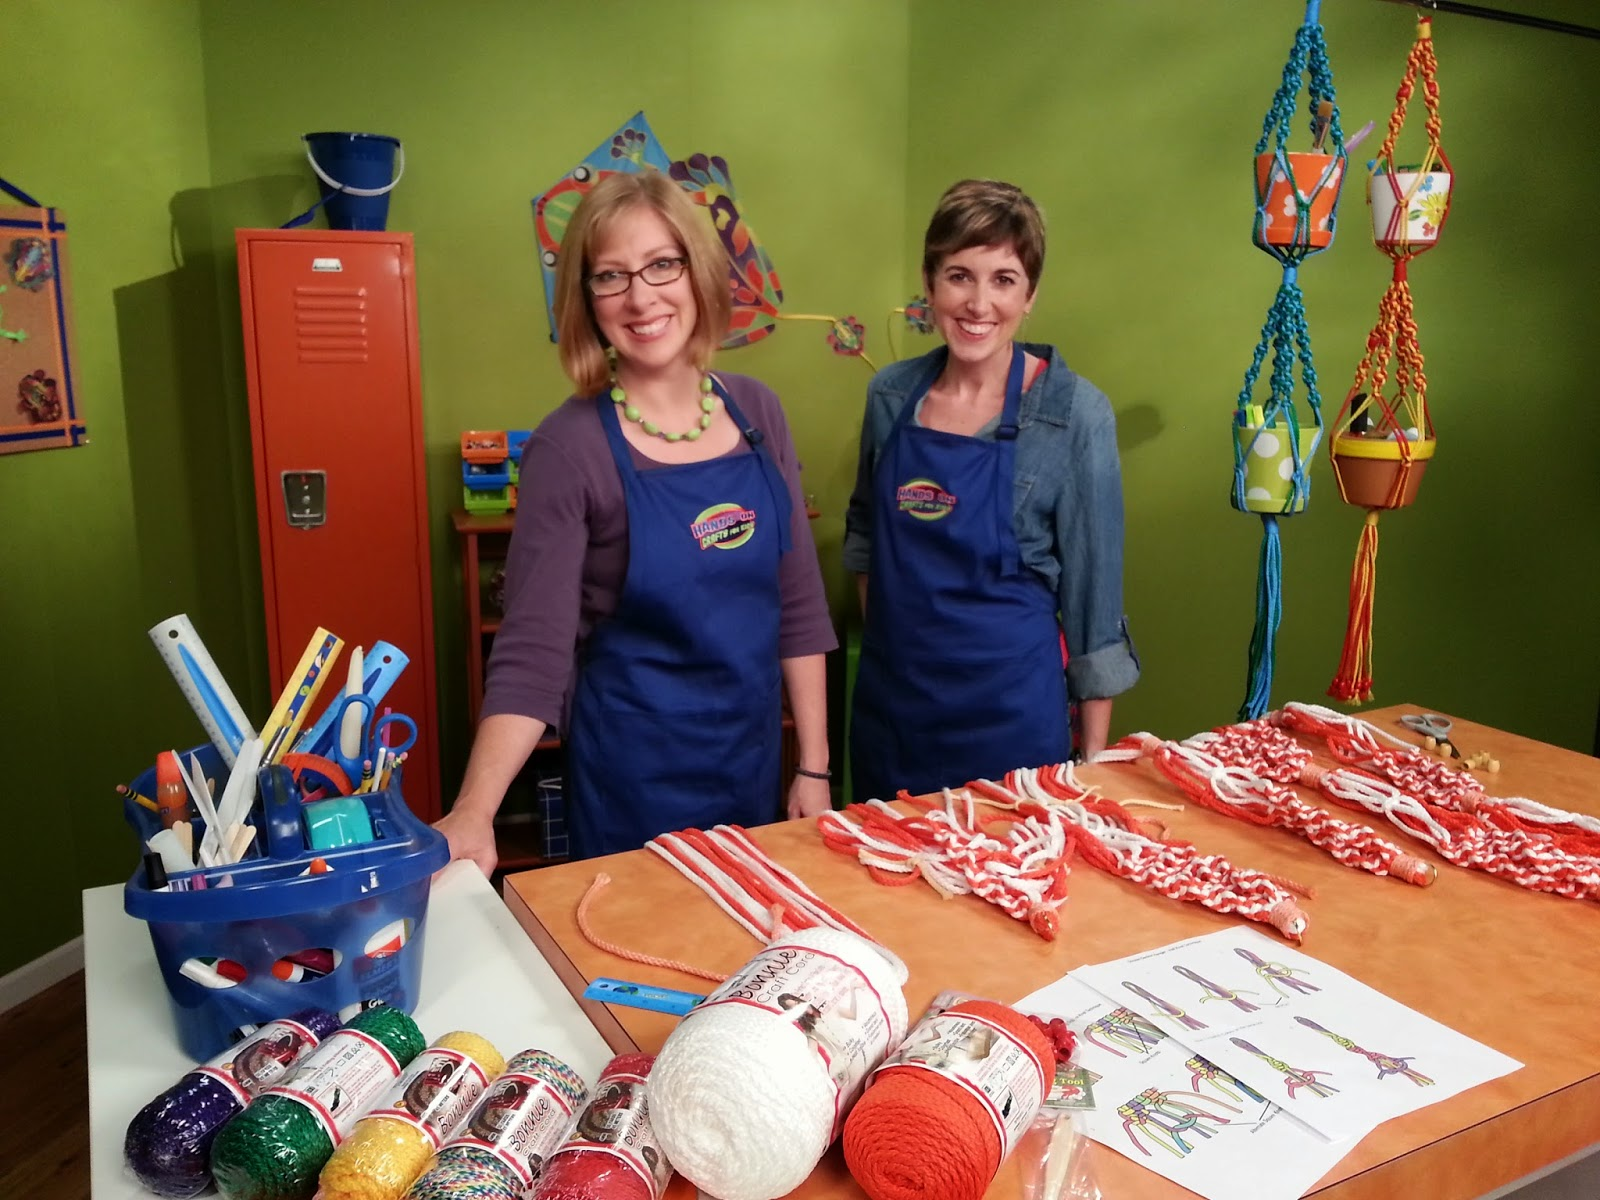 Katie Hacker (left) and Candie Cooper (right) on the set of Hands On - photo courtesy of Hands On Crafts for Kids